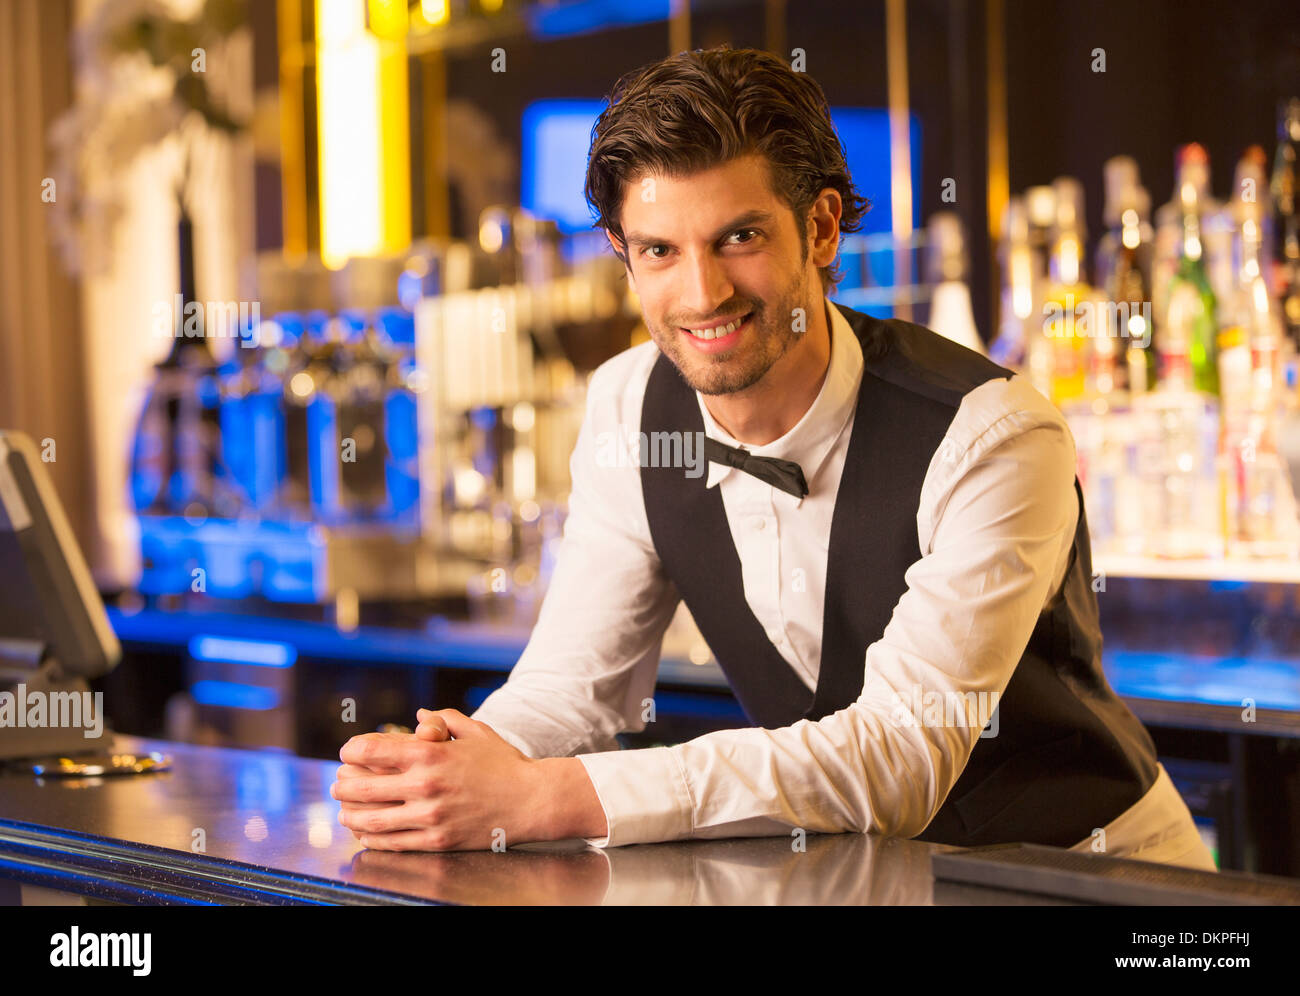 Portrait of well dressed bartender leaning on bar - Stock Image